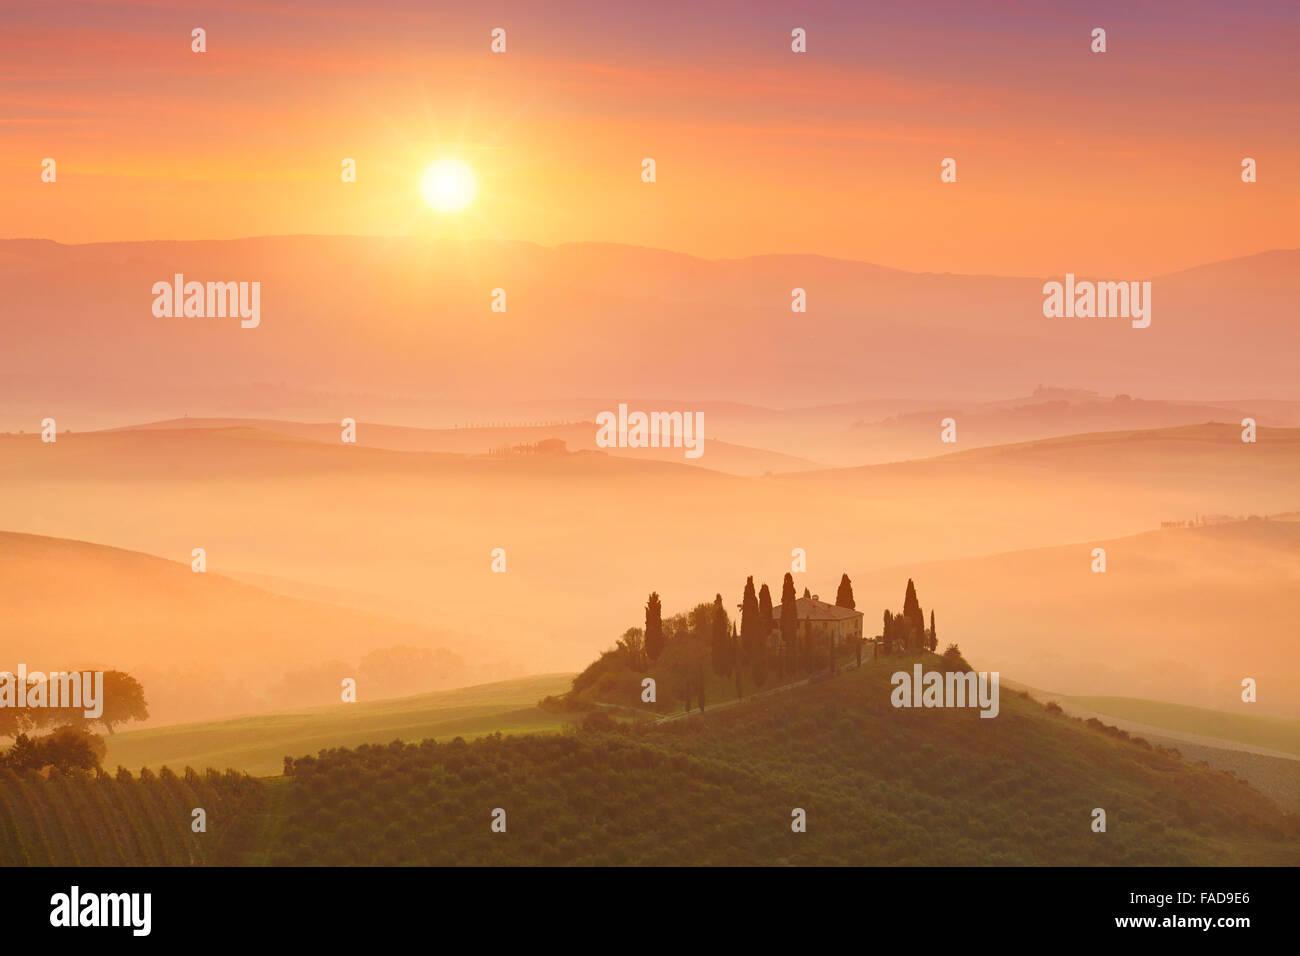 Landscapes of Tuscany sunrise, Val d'orcia,  Italy - Stock Image